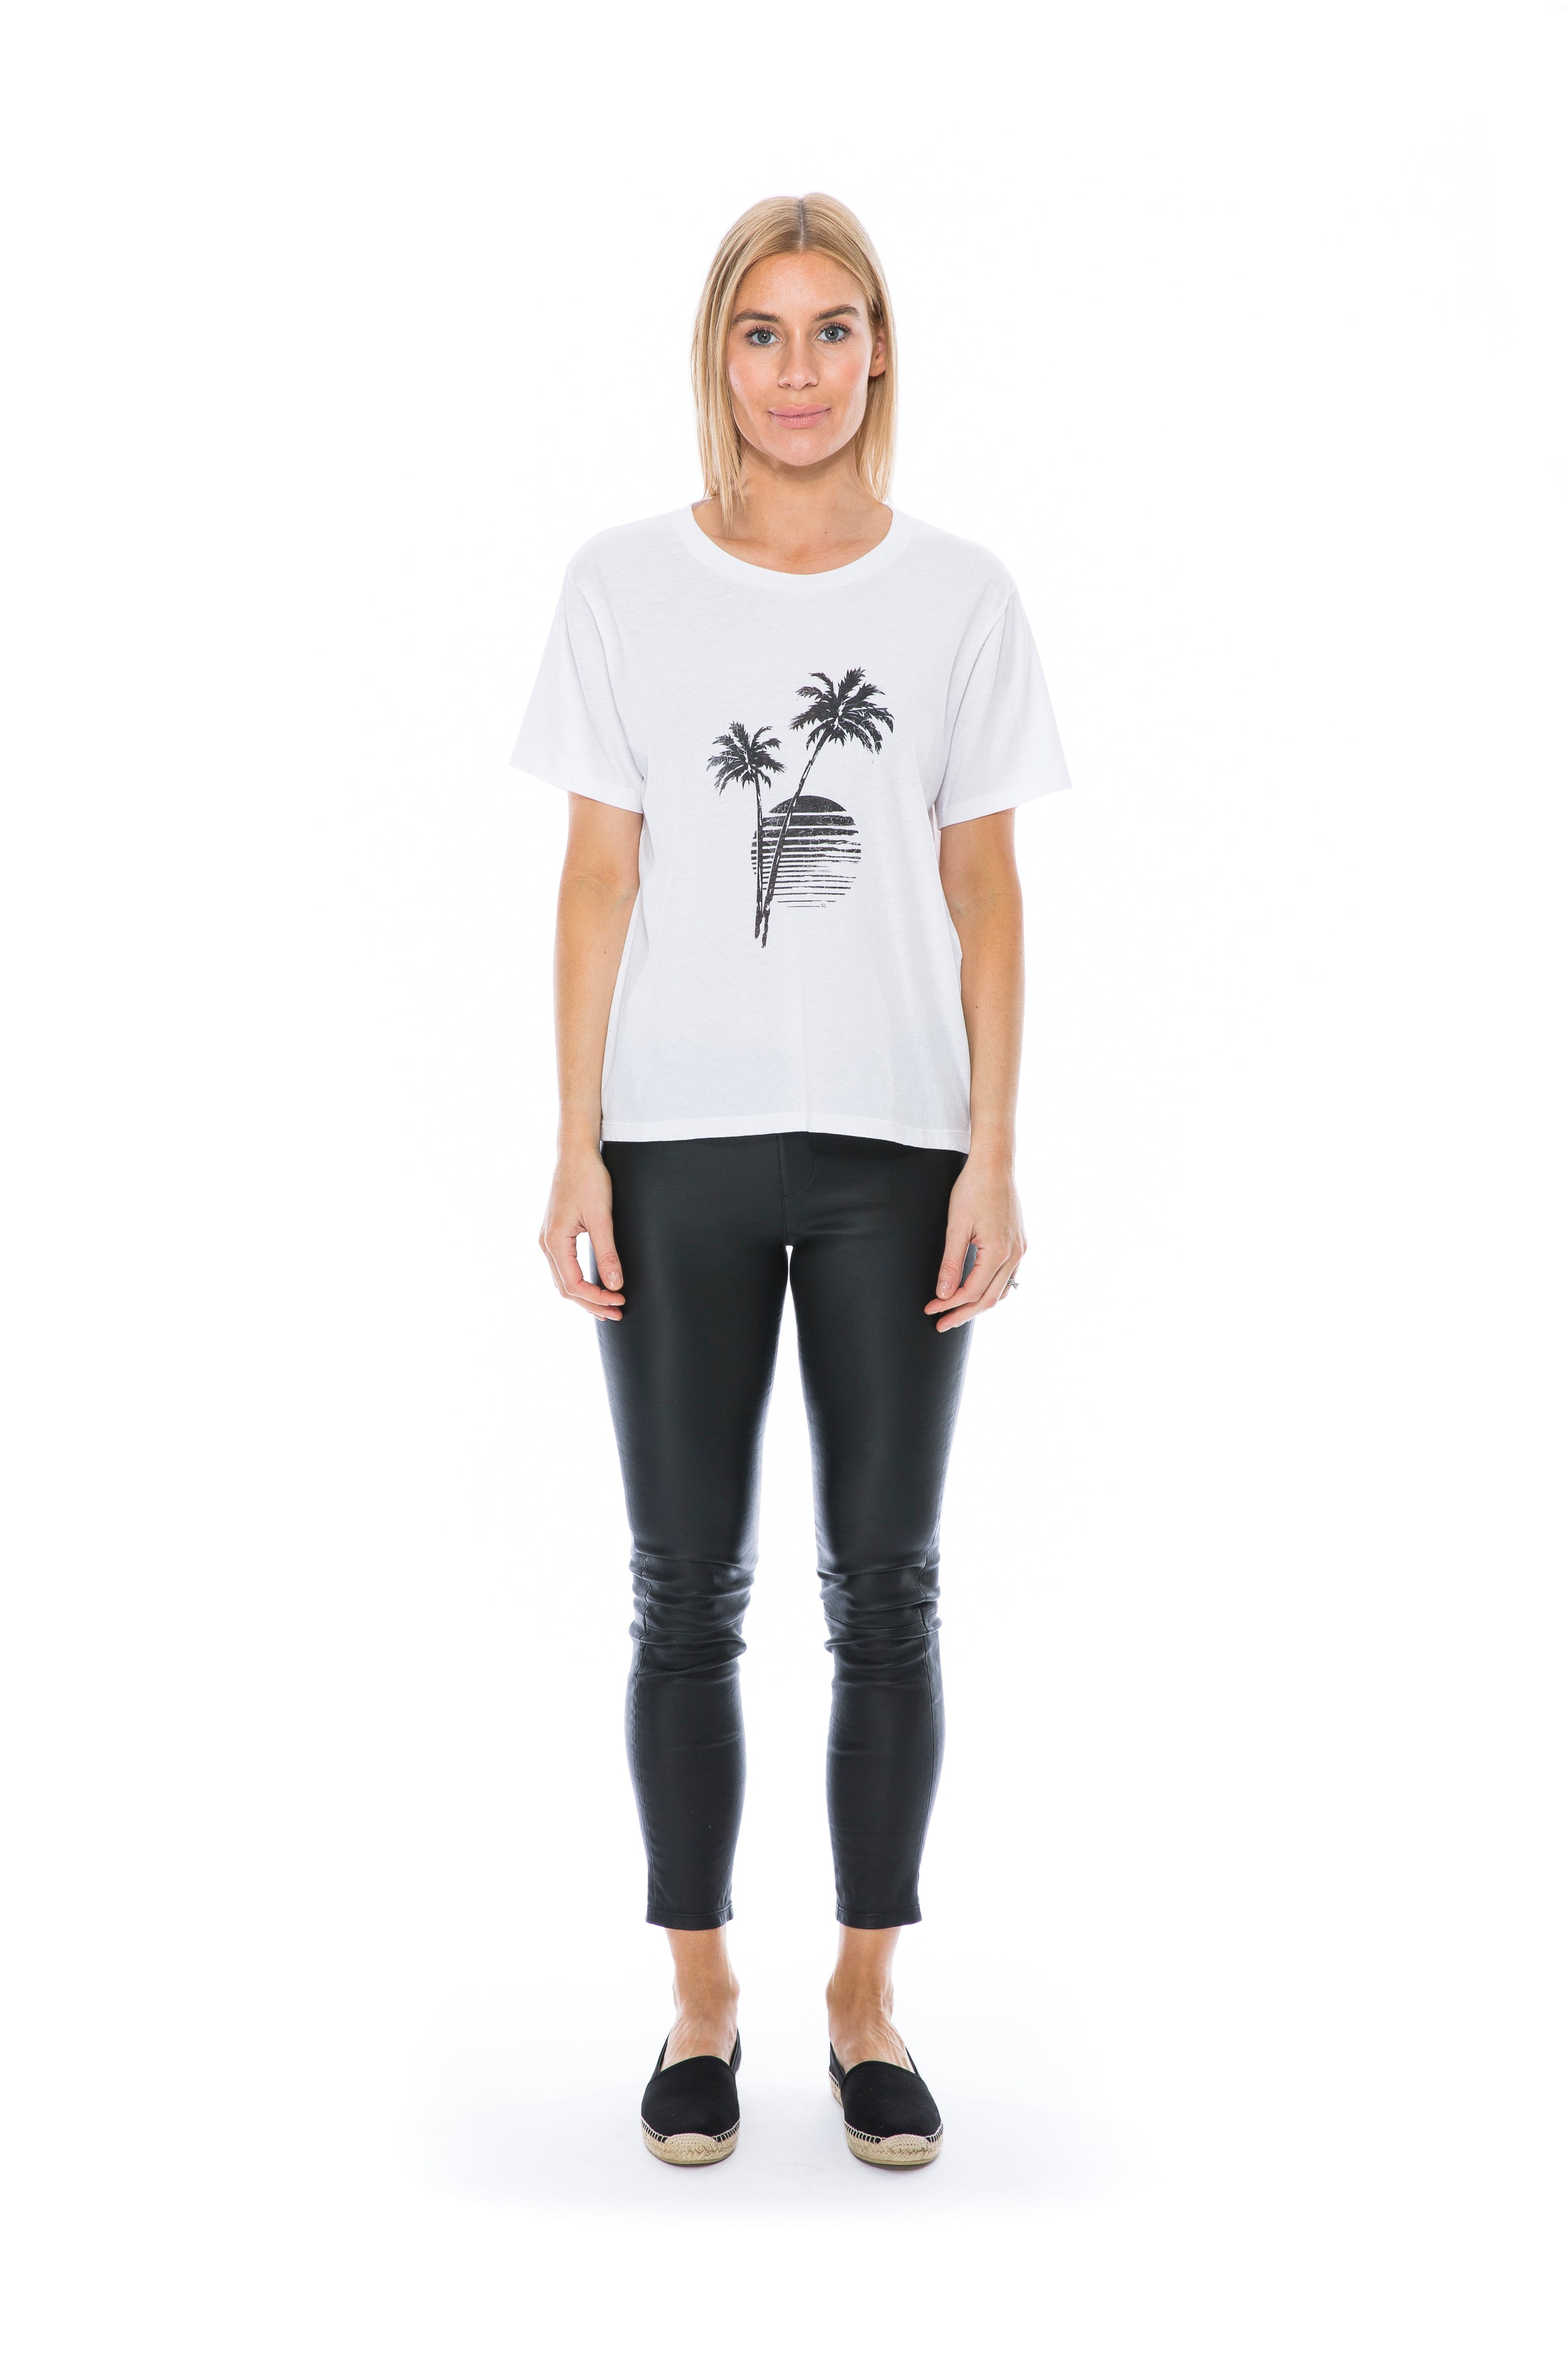 PALMS T-SHIRT WHITE